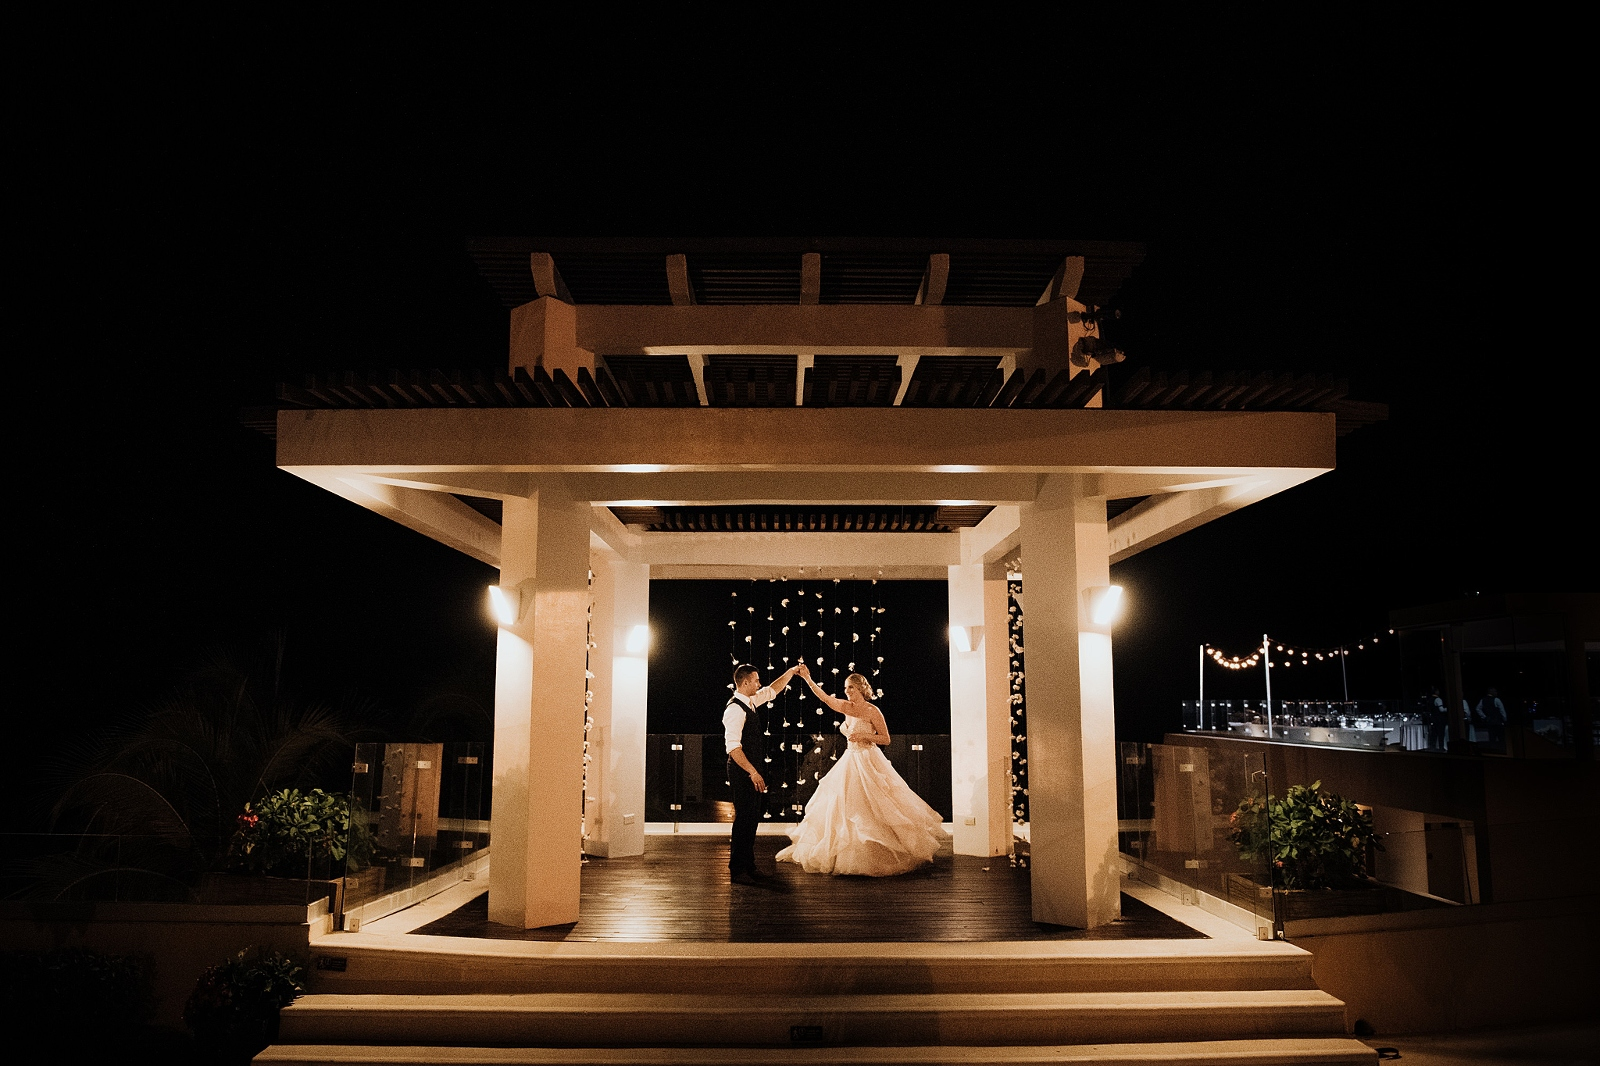 Bride and groom dancing in night shot during mexico destination wedding in Puerto vallarta iberostar playa mita